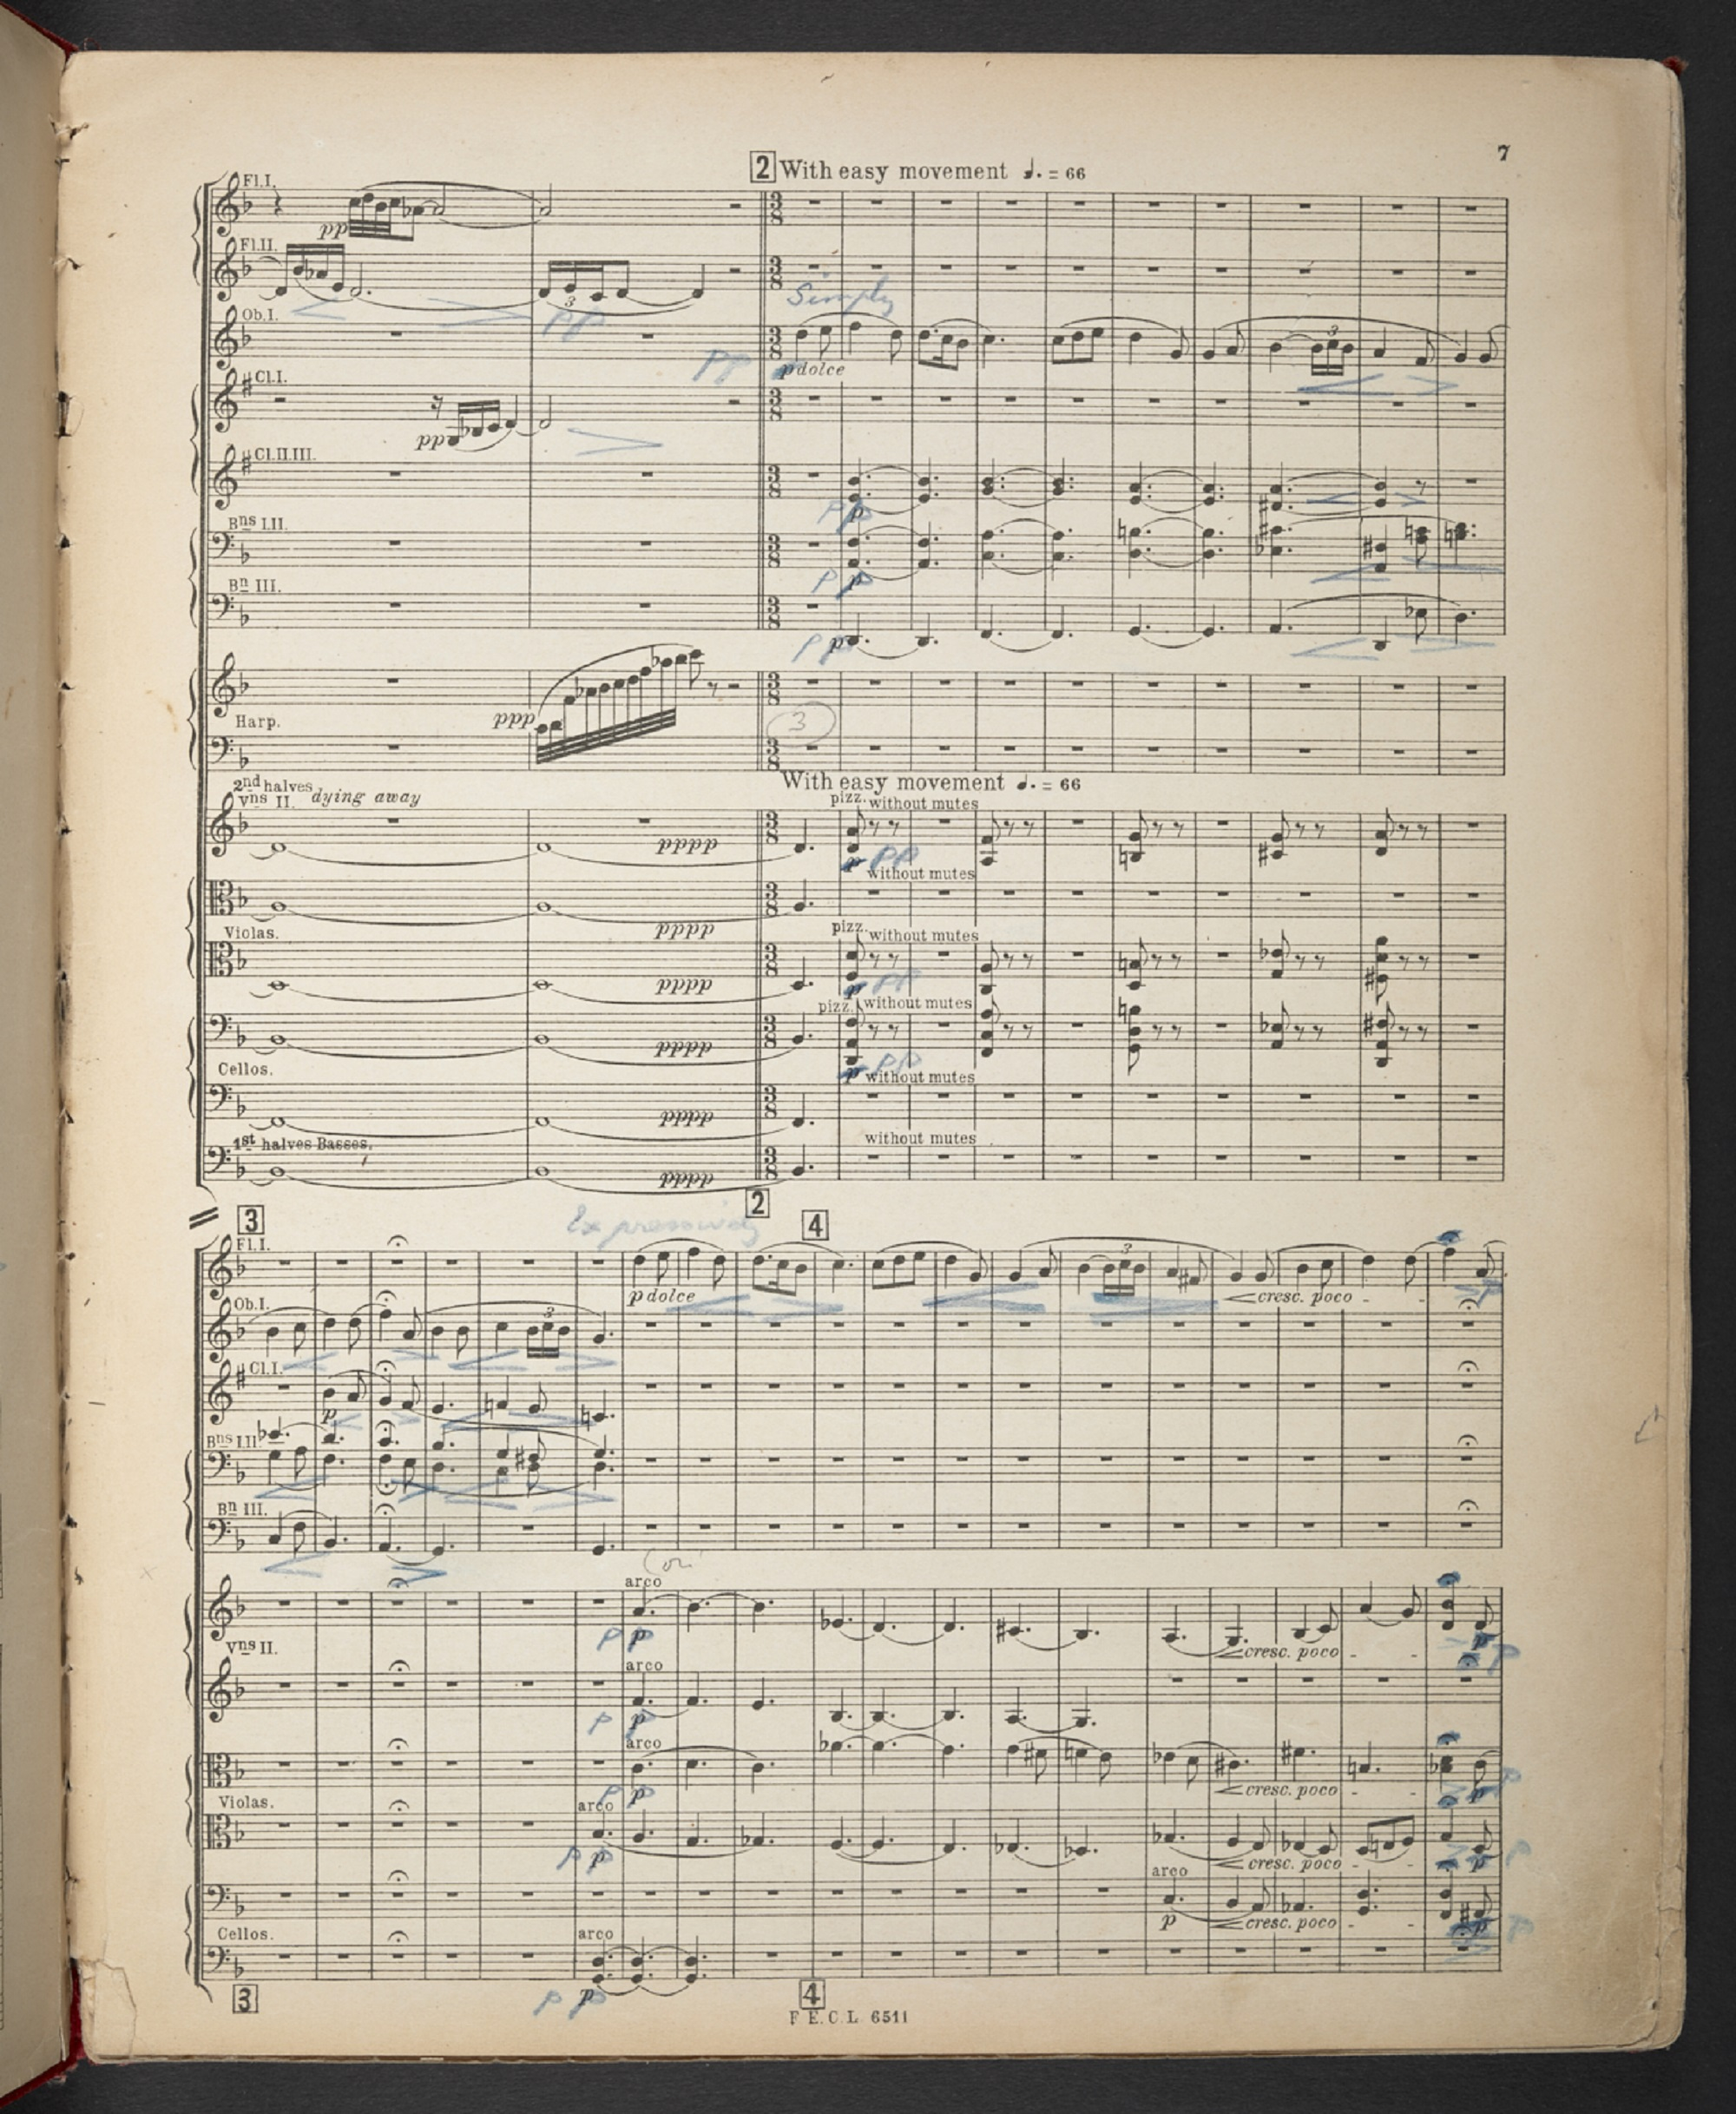 Frederick Delius, Brigg Fair, annotated by Thomas Beecham